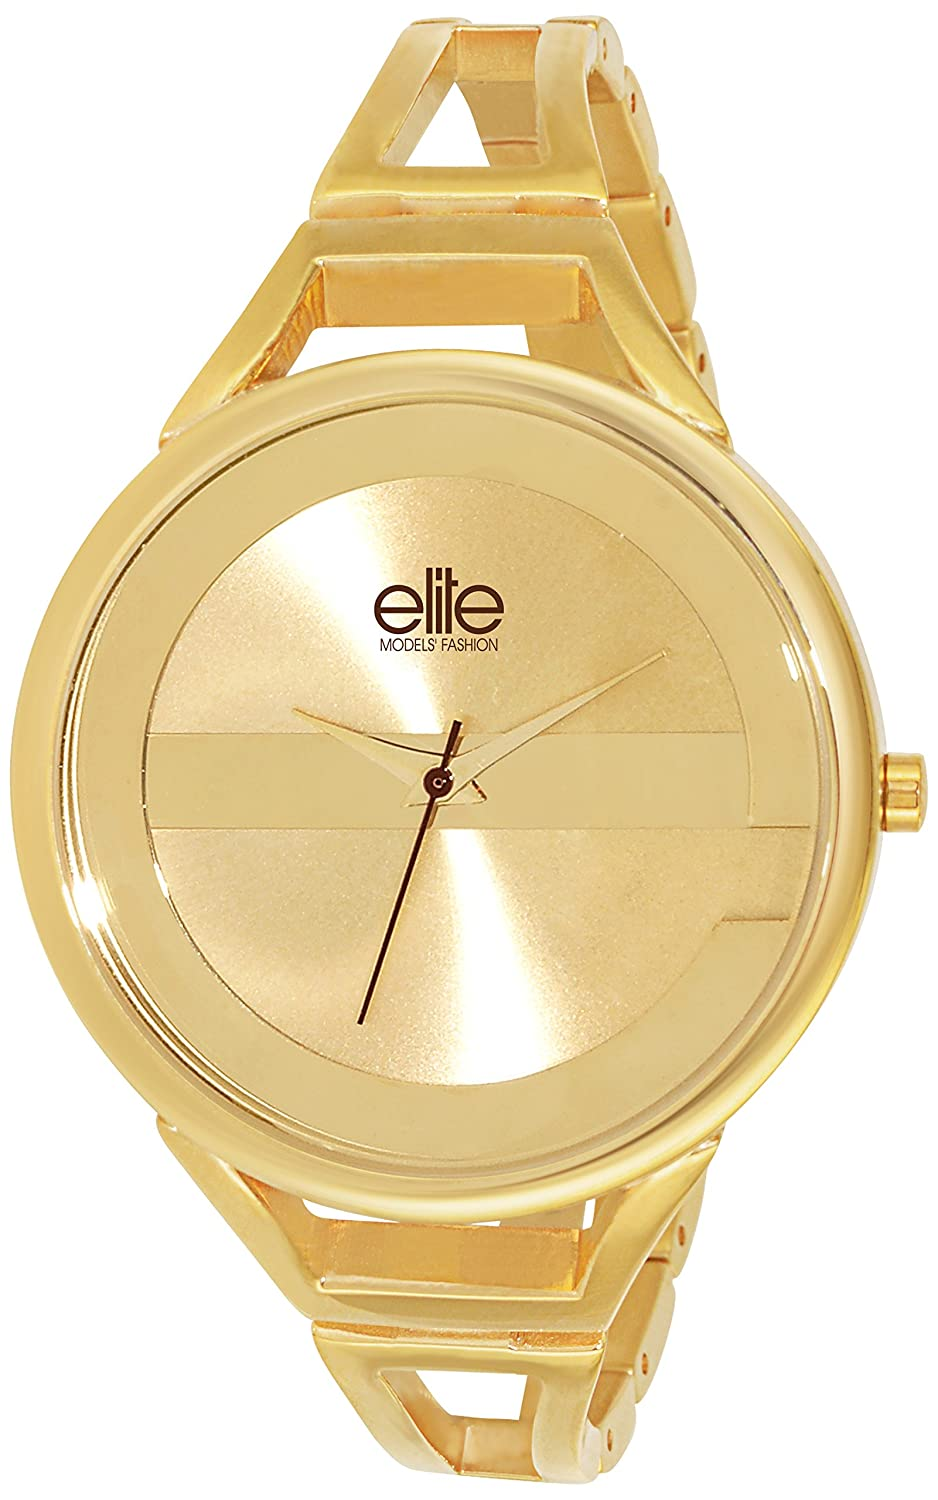 Elite Models' Fashion Damen-Armbanduhr Analog Quarz Gold E54154G-102